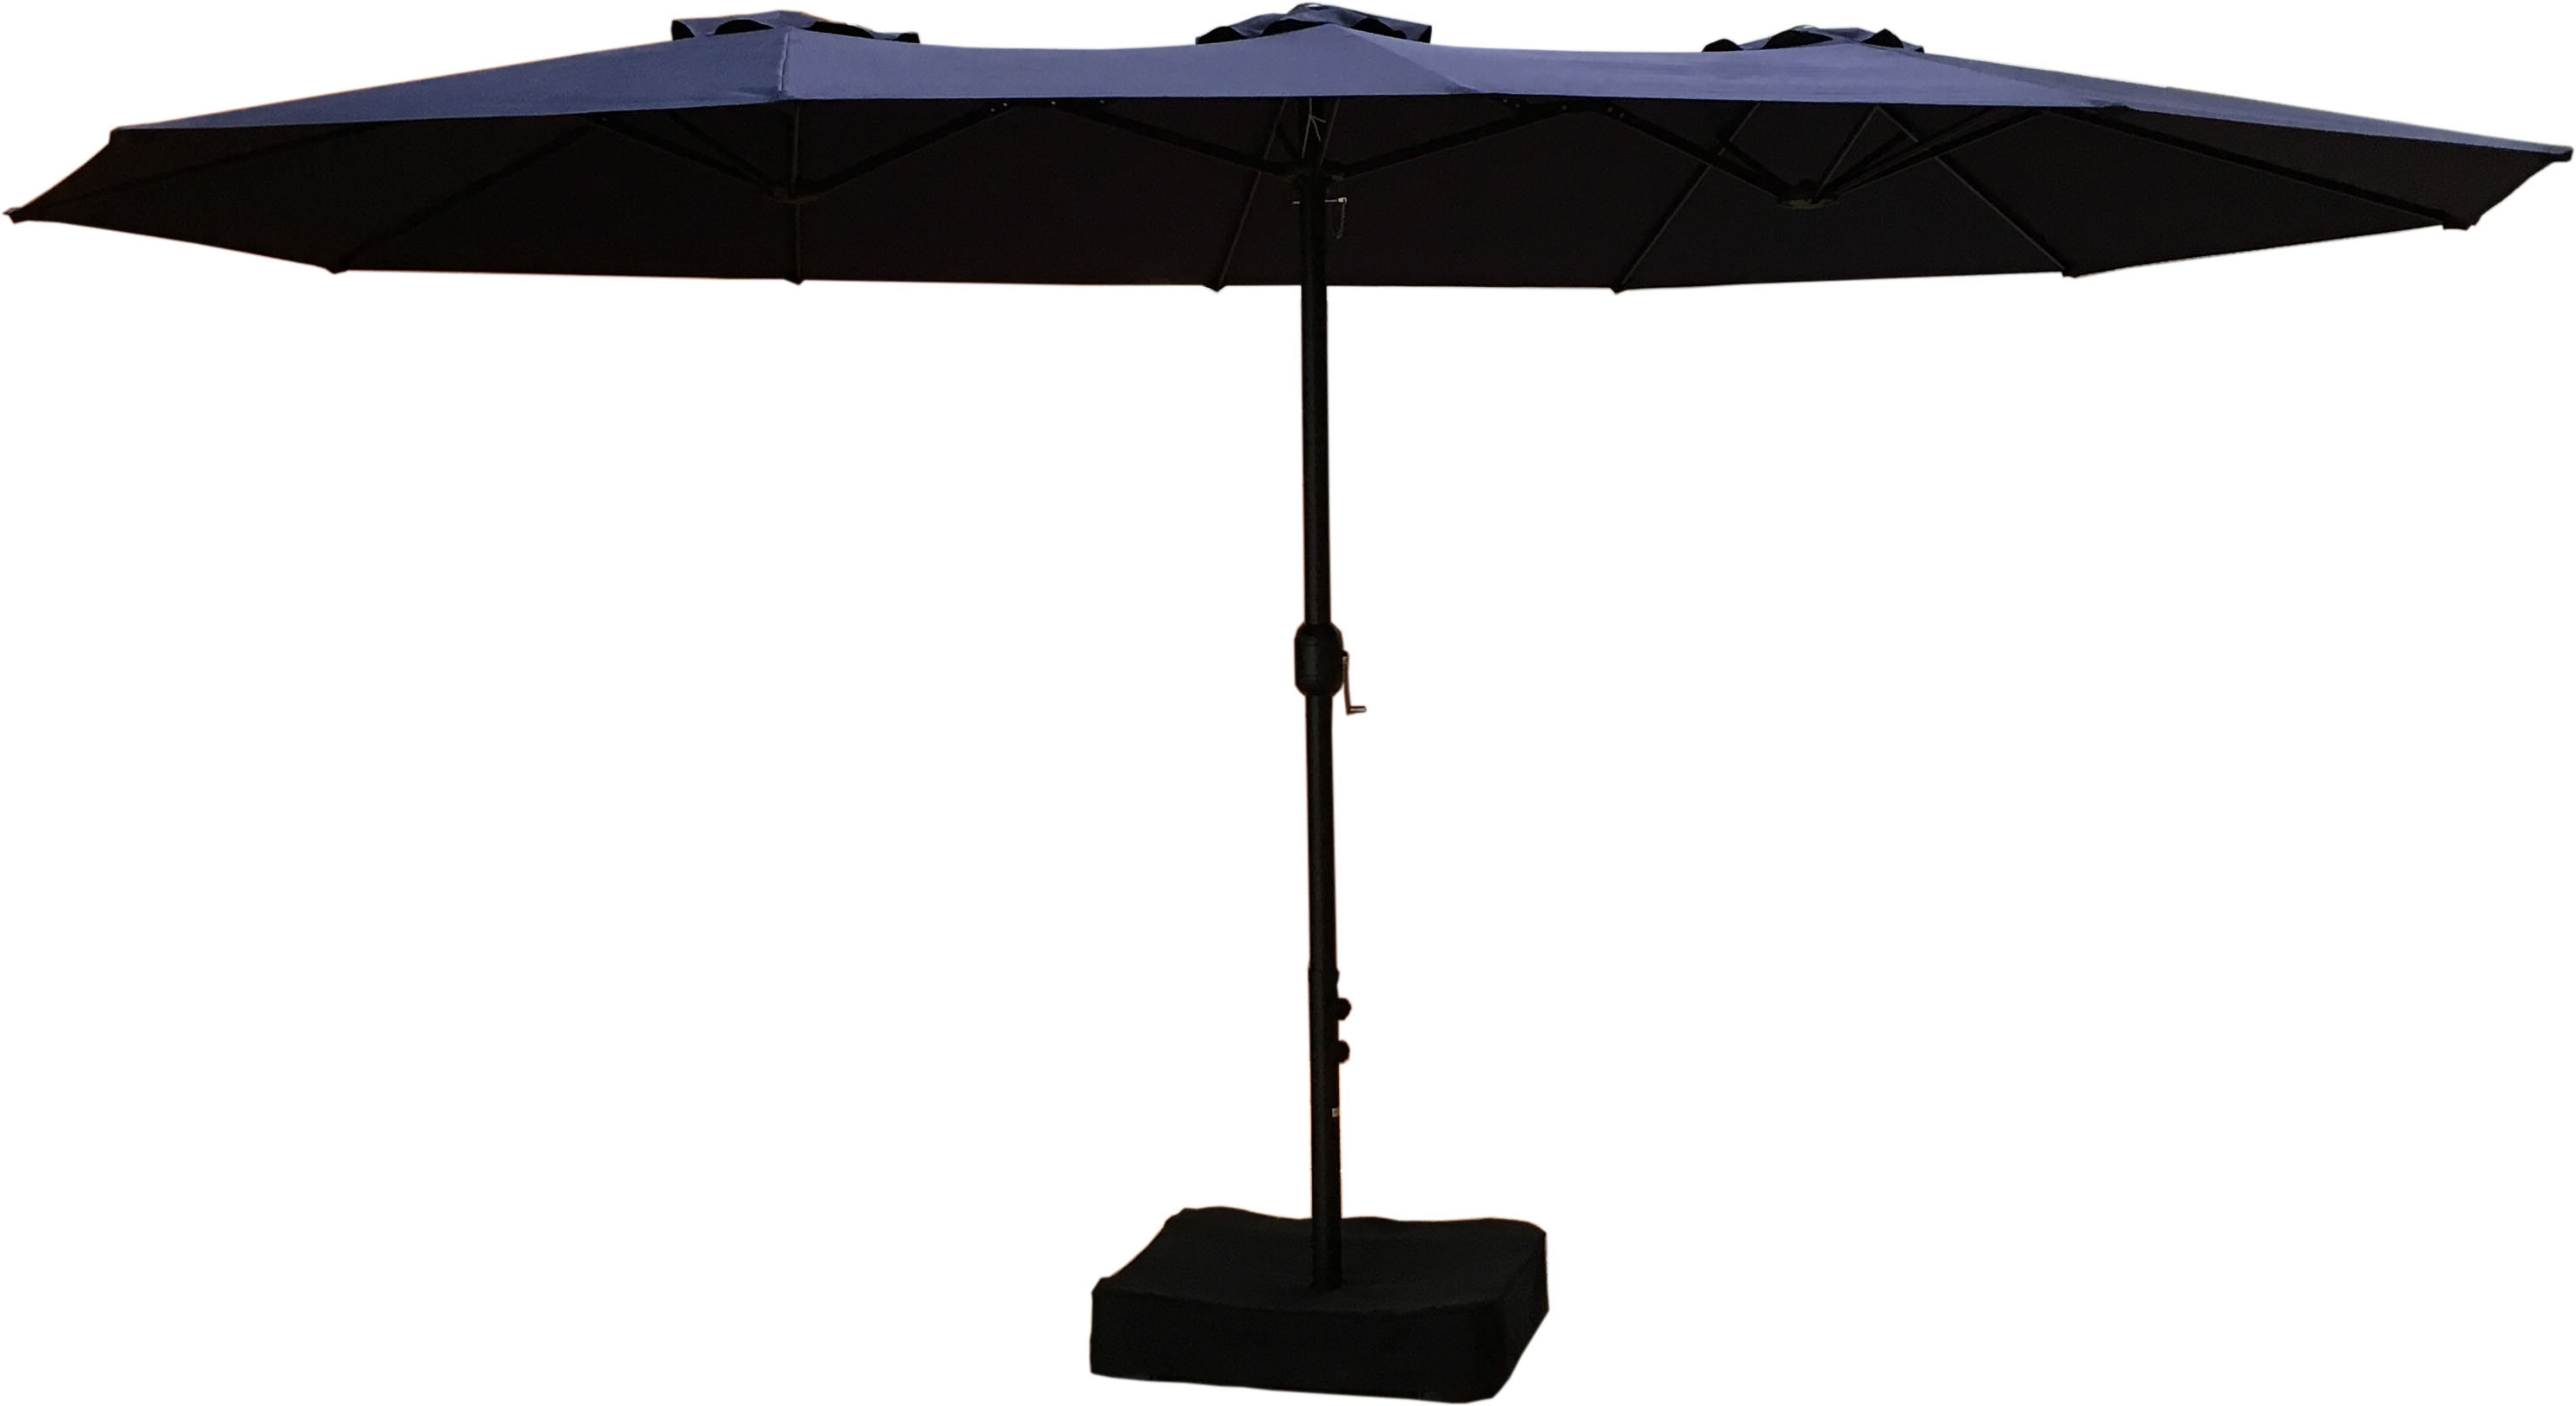 Fashionable Keane 15' Market Umbrella With Madalyn Rectangular Market Sunbrella Umbrellas (View 7 of 20)